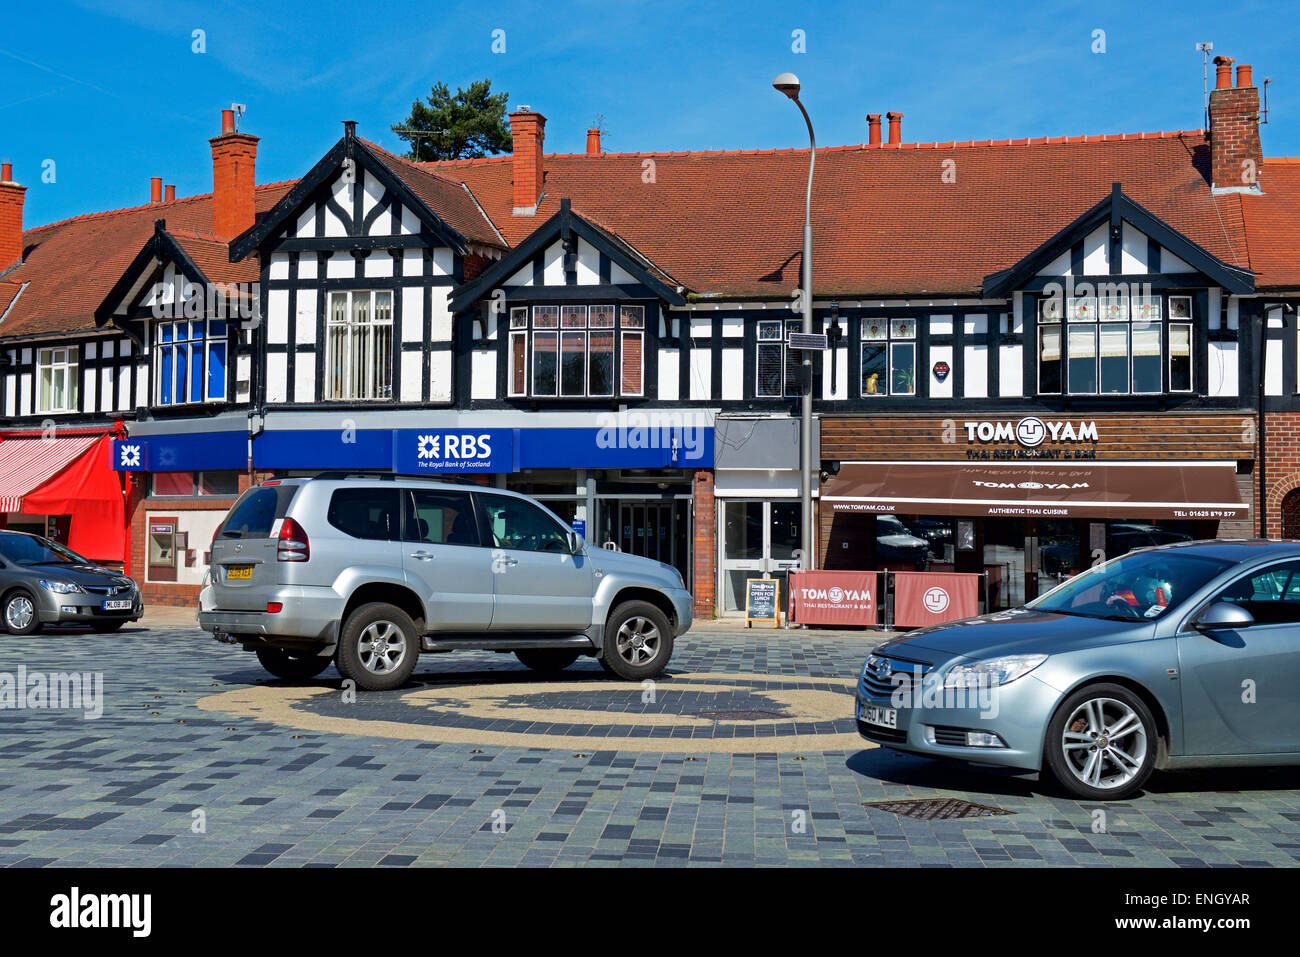 New shared space scheme for traffic in Poynton,Cheshire, England UK - Stock Image